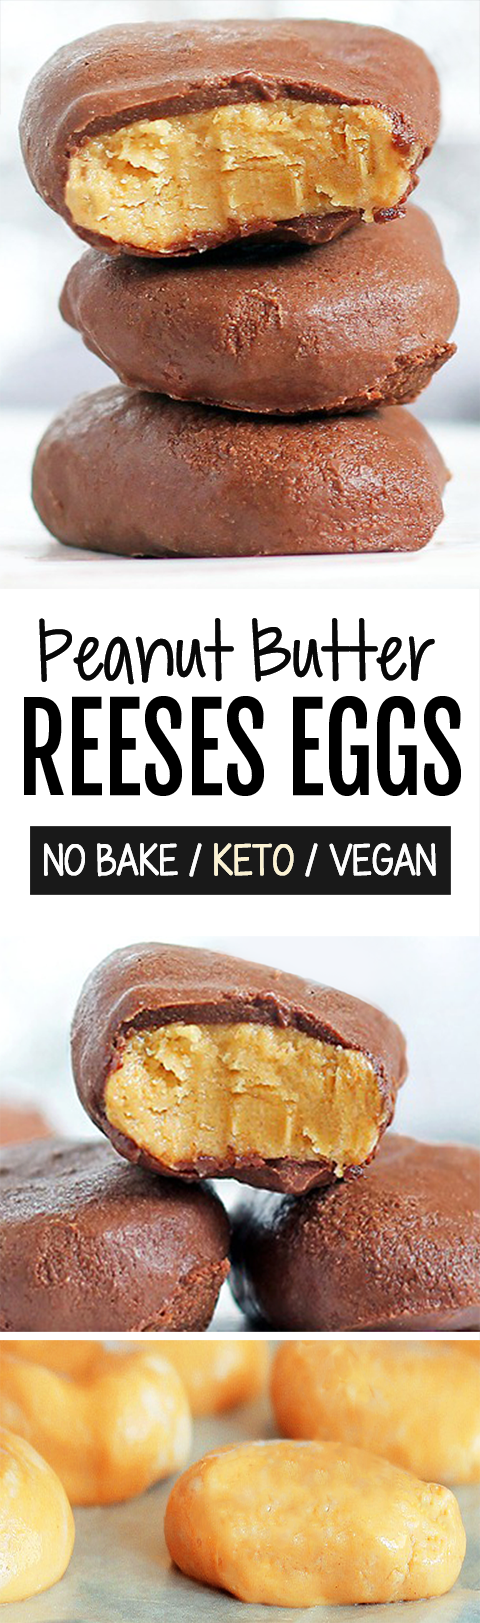 Easy NO BAKE Reeses Peanut Butter Eggs (Vegan, Keto Friendly)